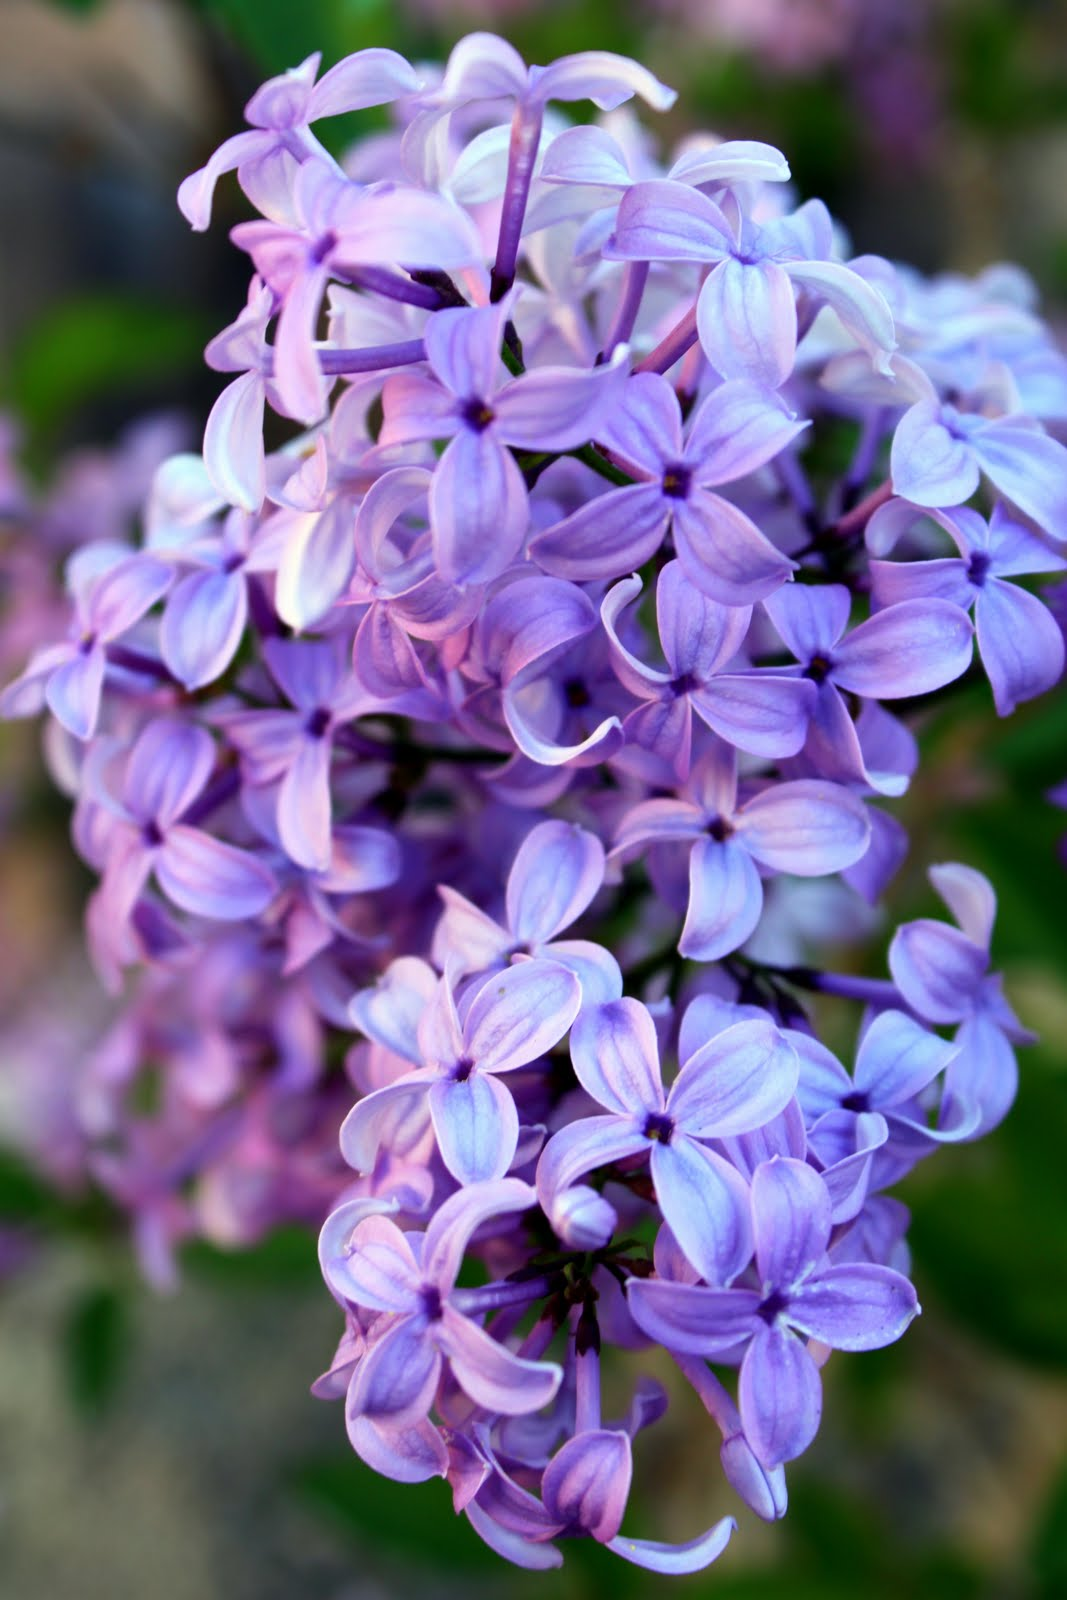 Sunny Days: Loving our Lilacs